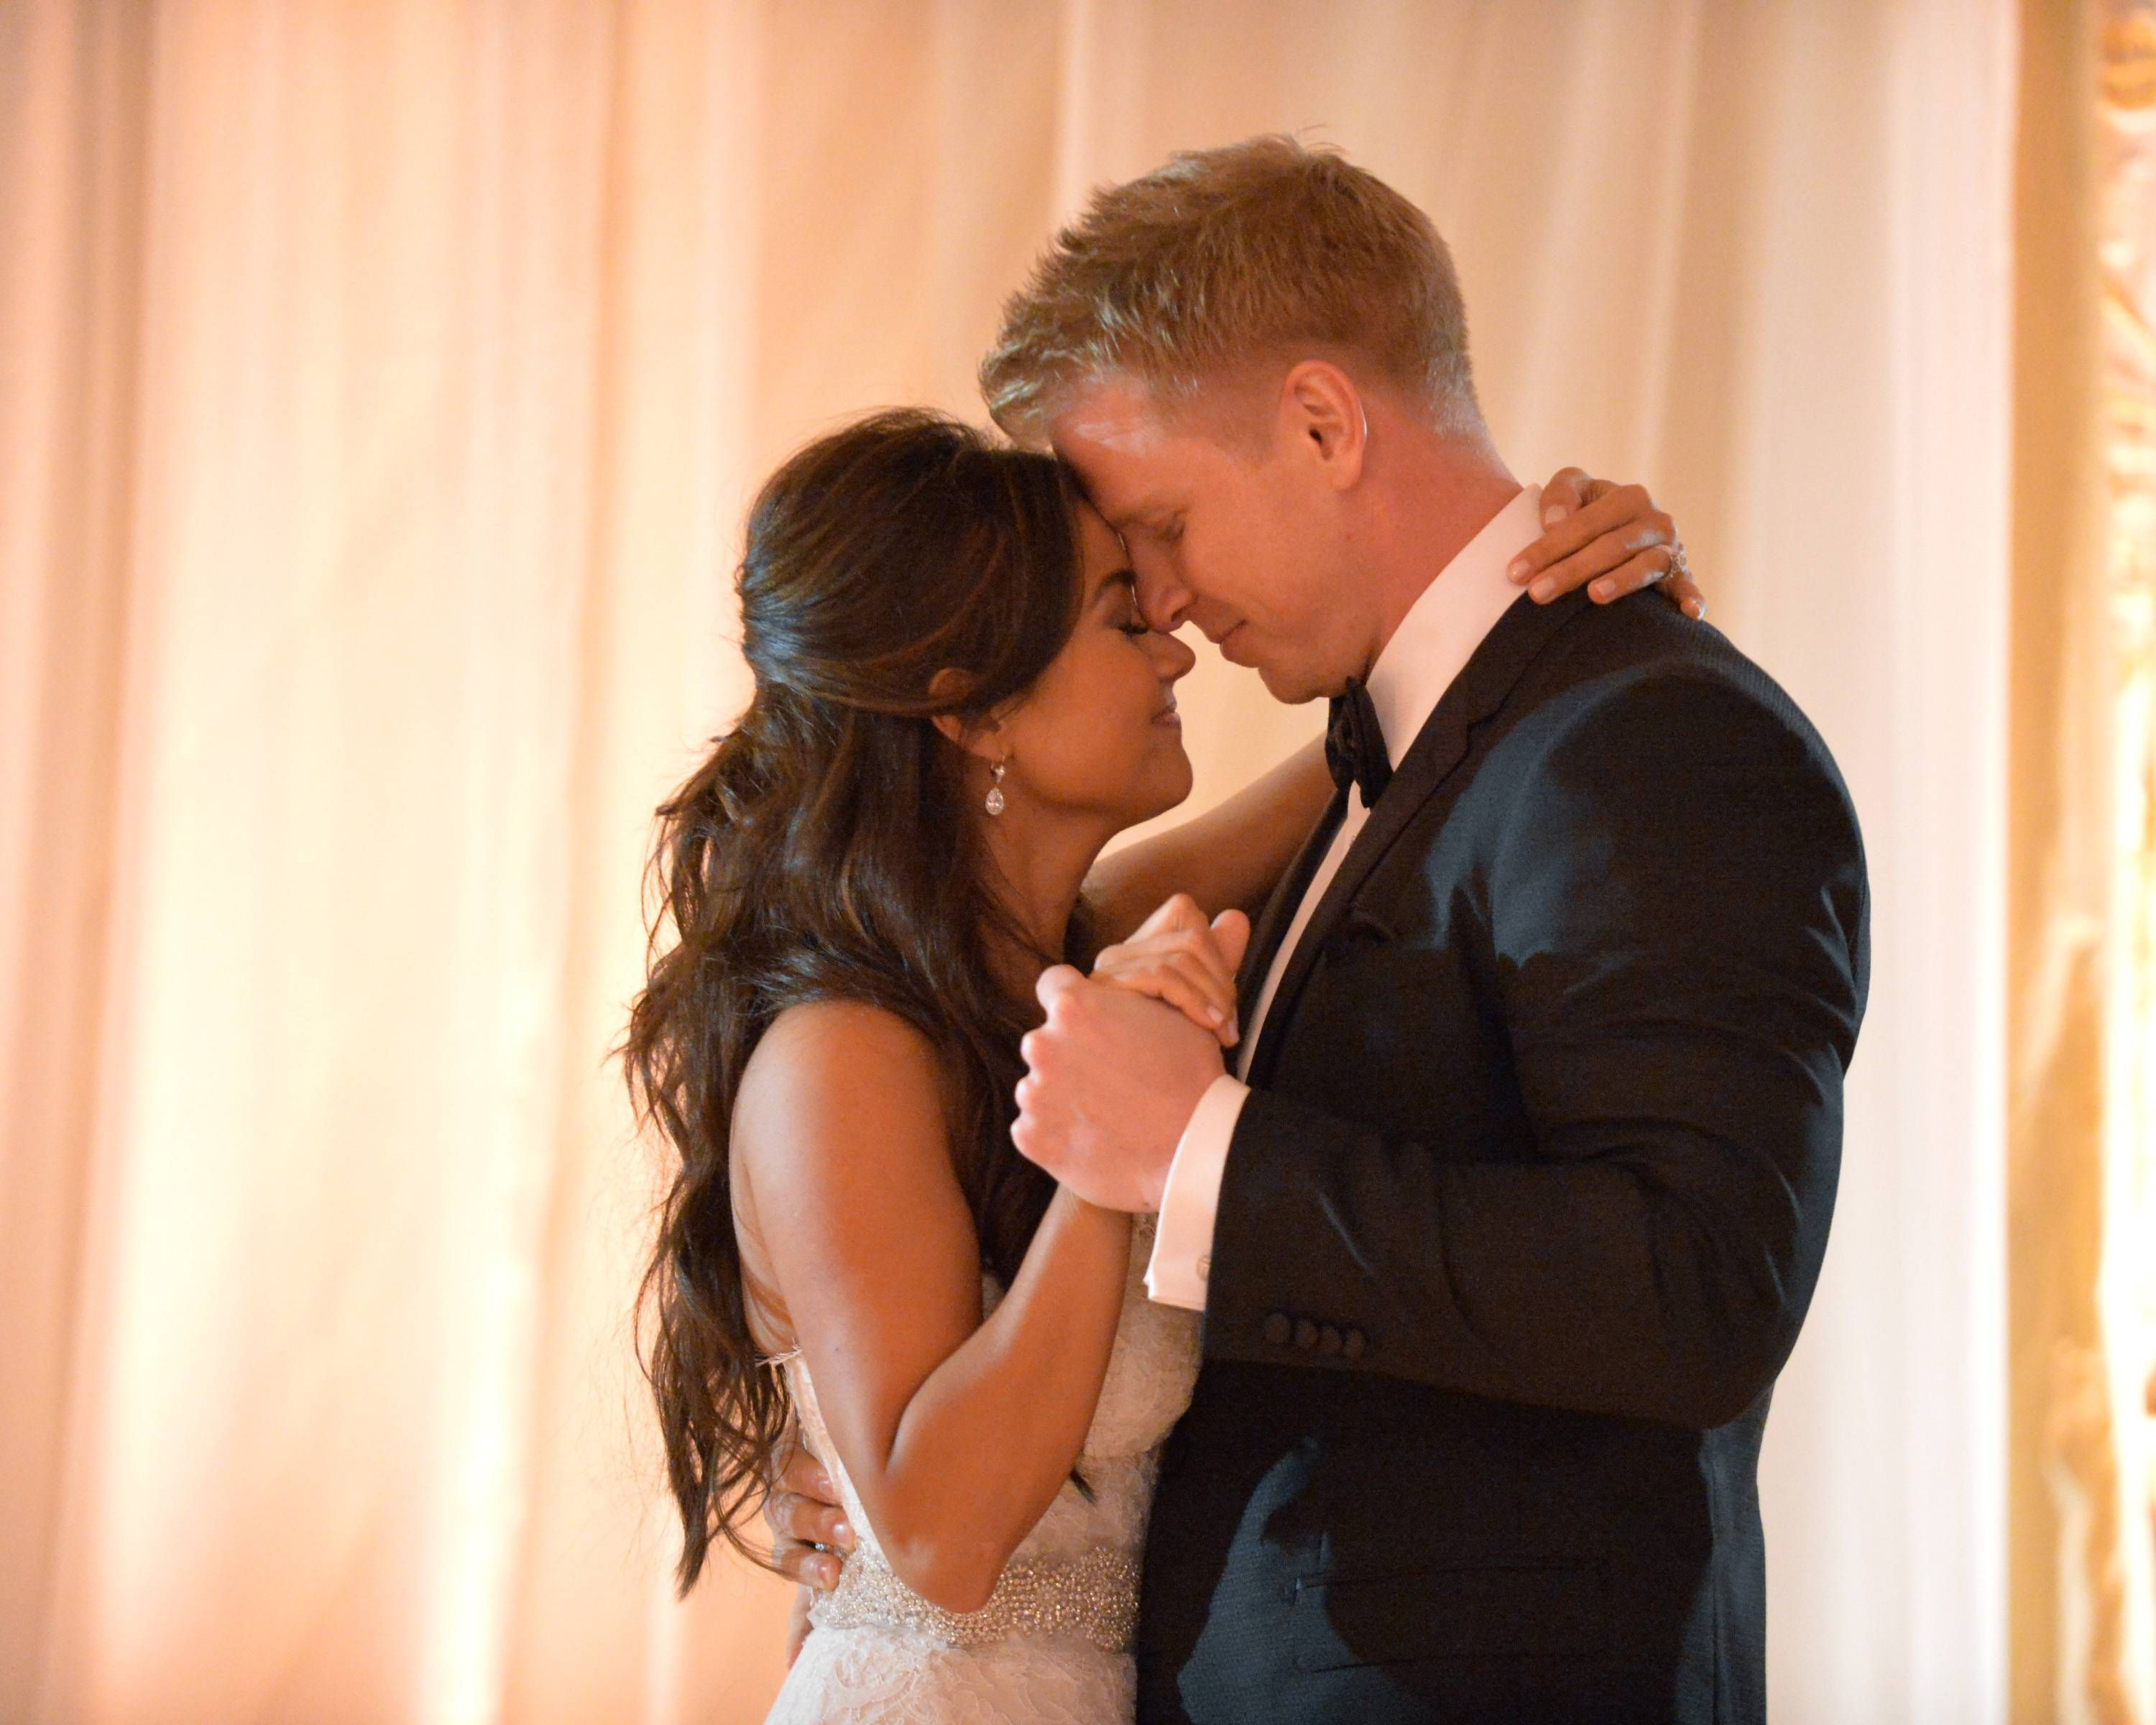 Exclusive The Bachelor S Sean Lowe And Fiancee Catherine Giudici Living Apart Sean And Catherine Wedding Sean And Catherine Lowe Catherine And Sean